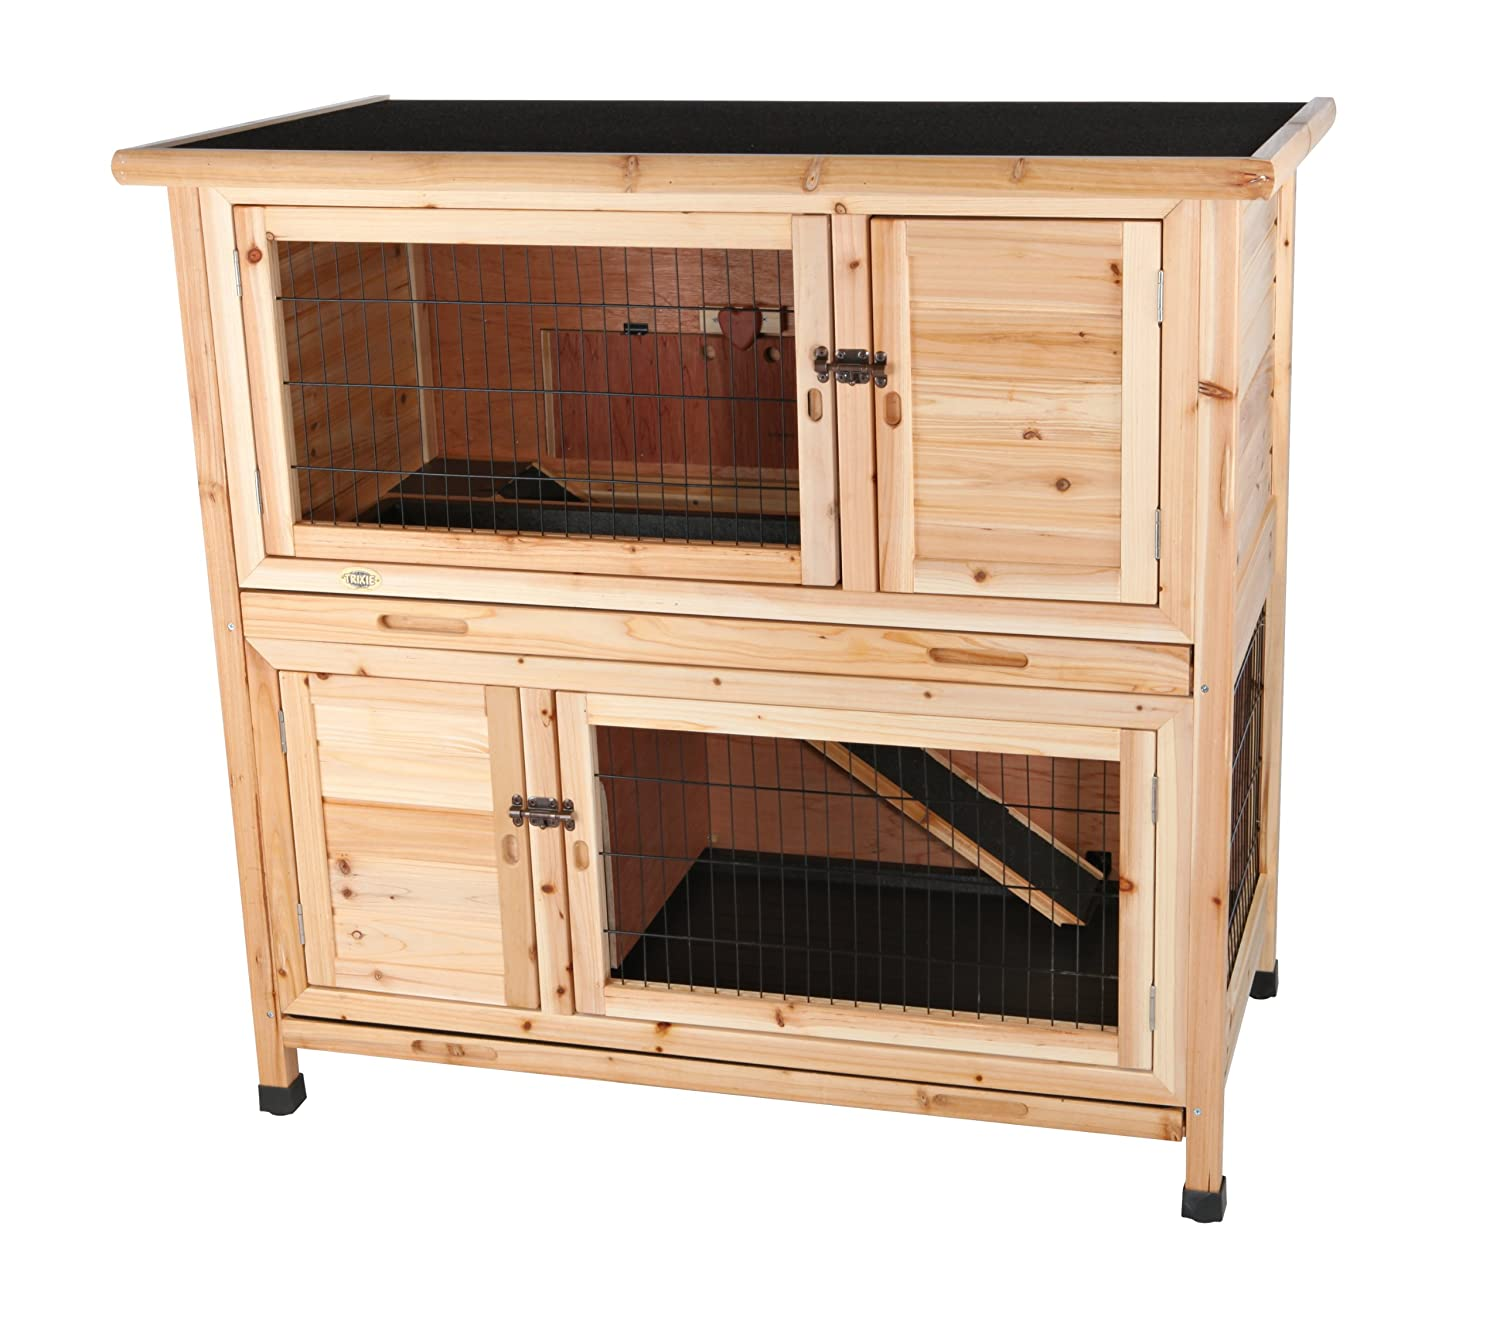 Diy outdoor rabbit hutch plans for sale plans free Blueprints for sale